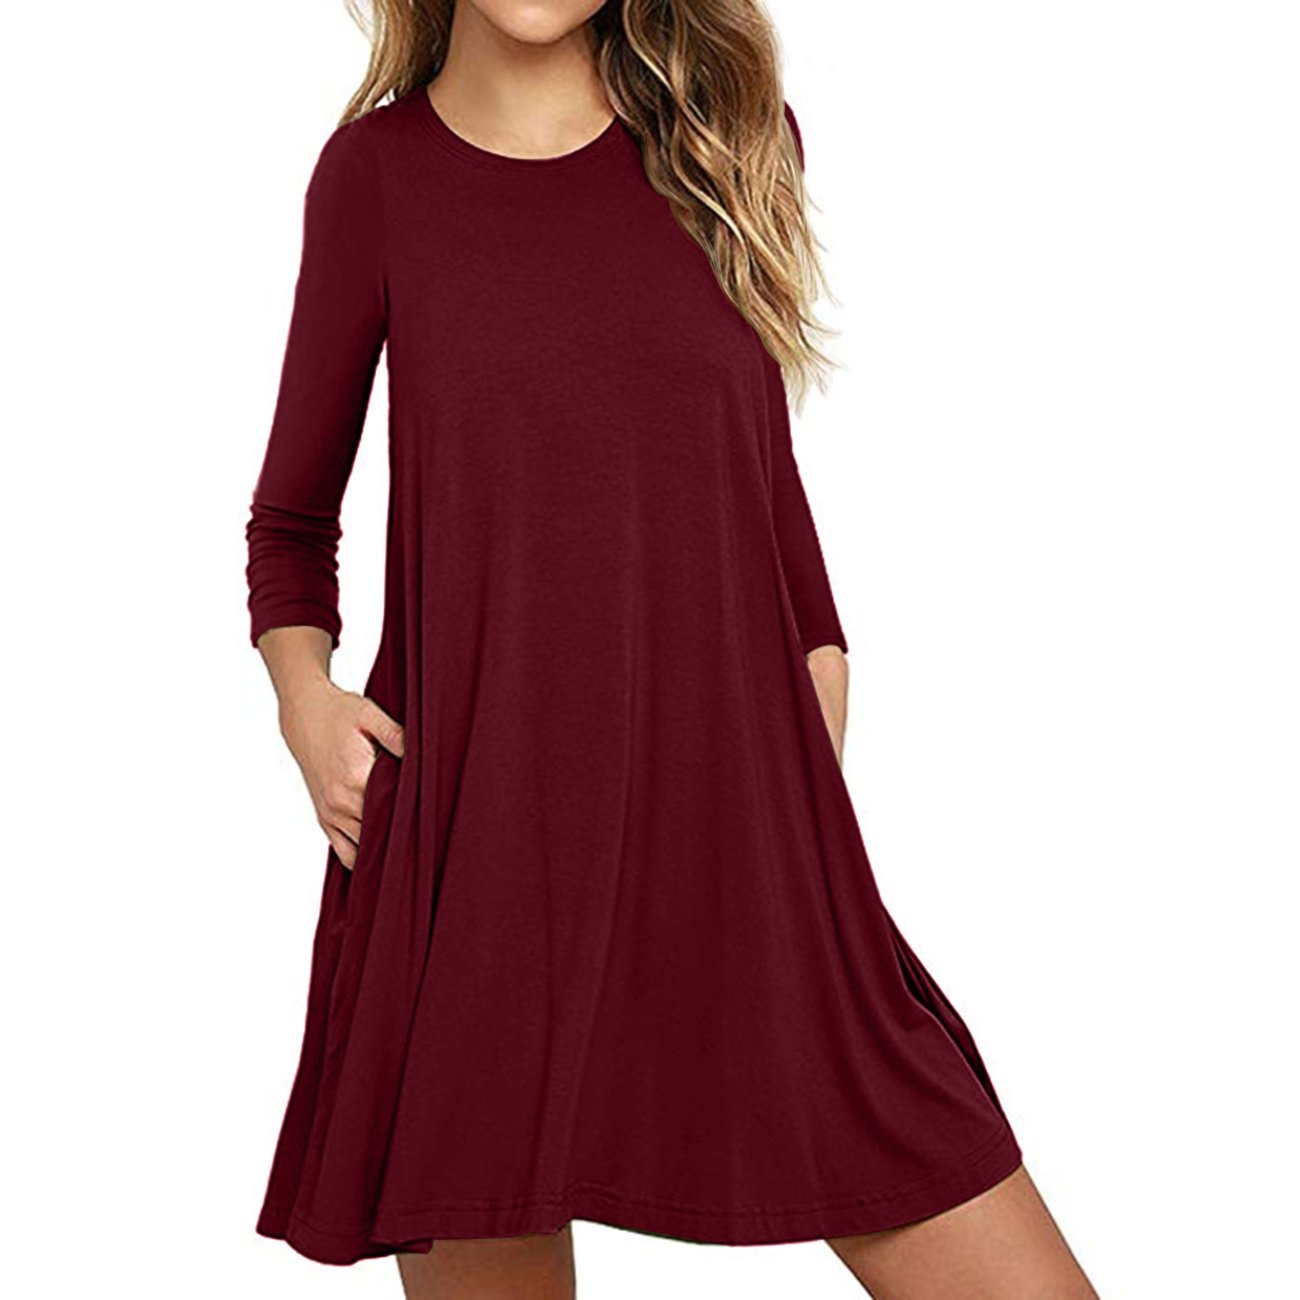 Cnokzol Women Long Sleeve Pleated T-Shirt Dress with Pockets Casual Loose Tunic Dress